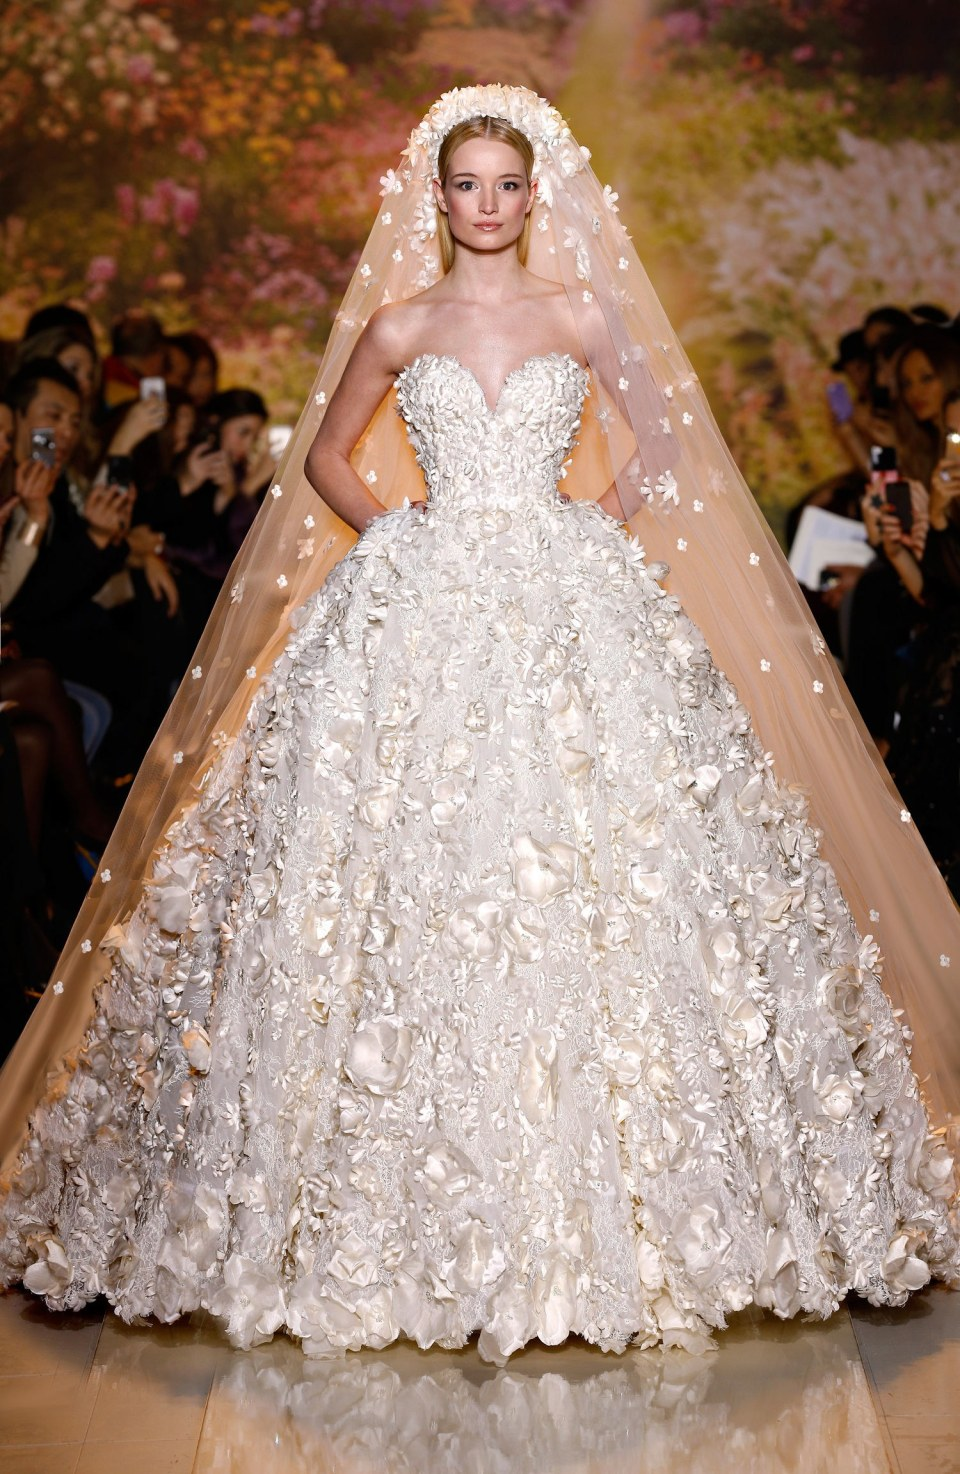 weddings-2014-07-46-best-new-wedding-dresses-bridal-market-main